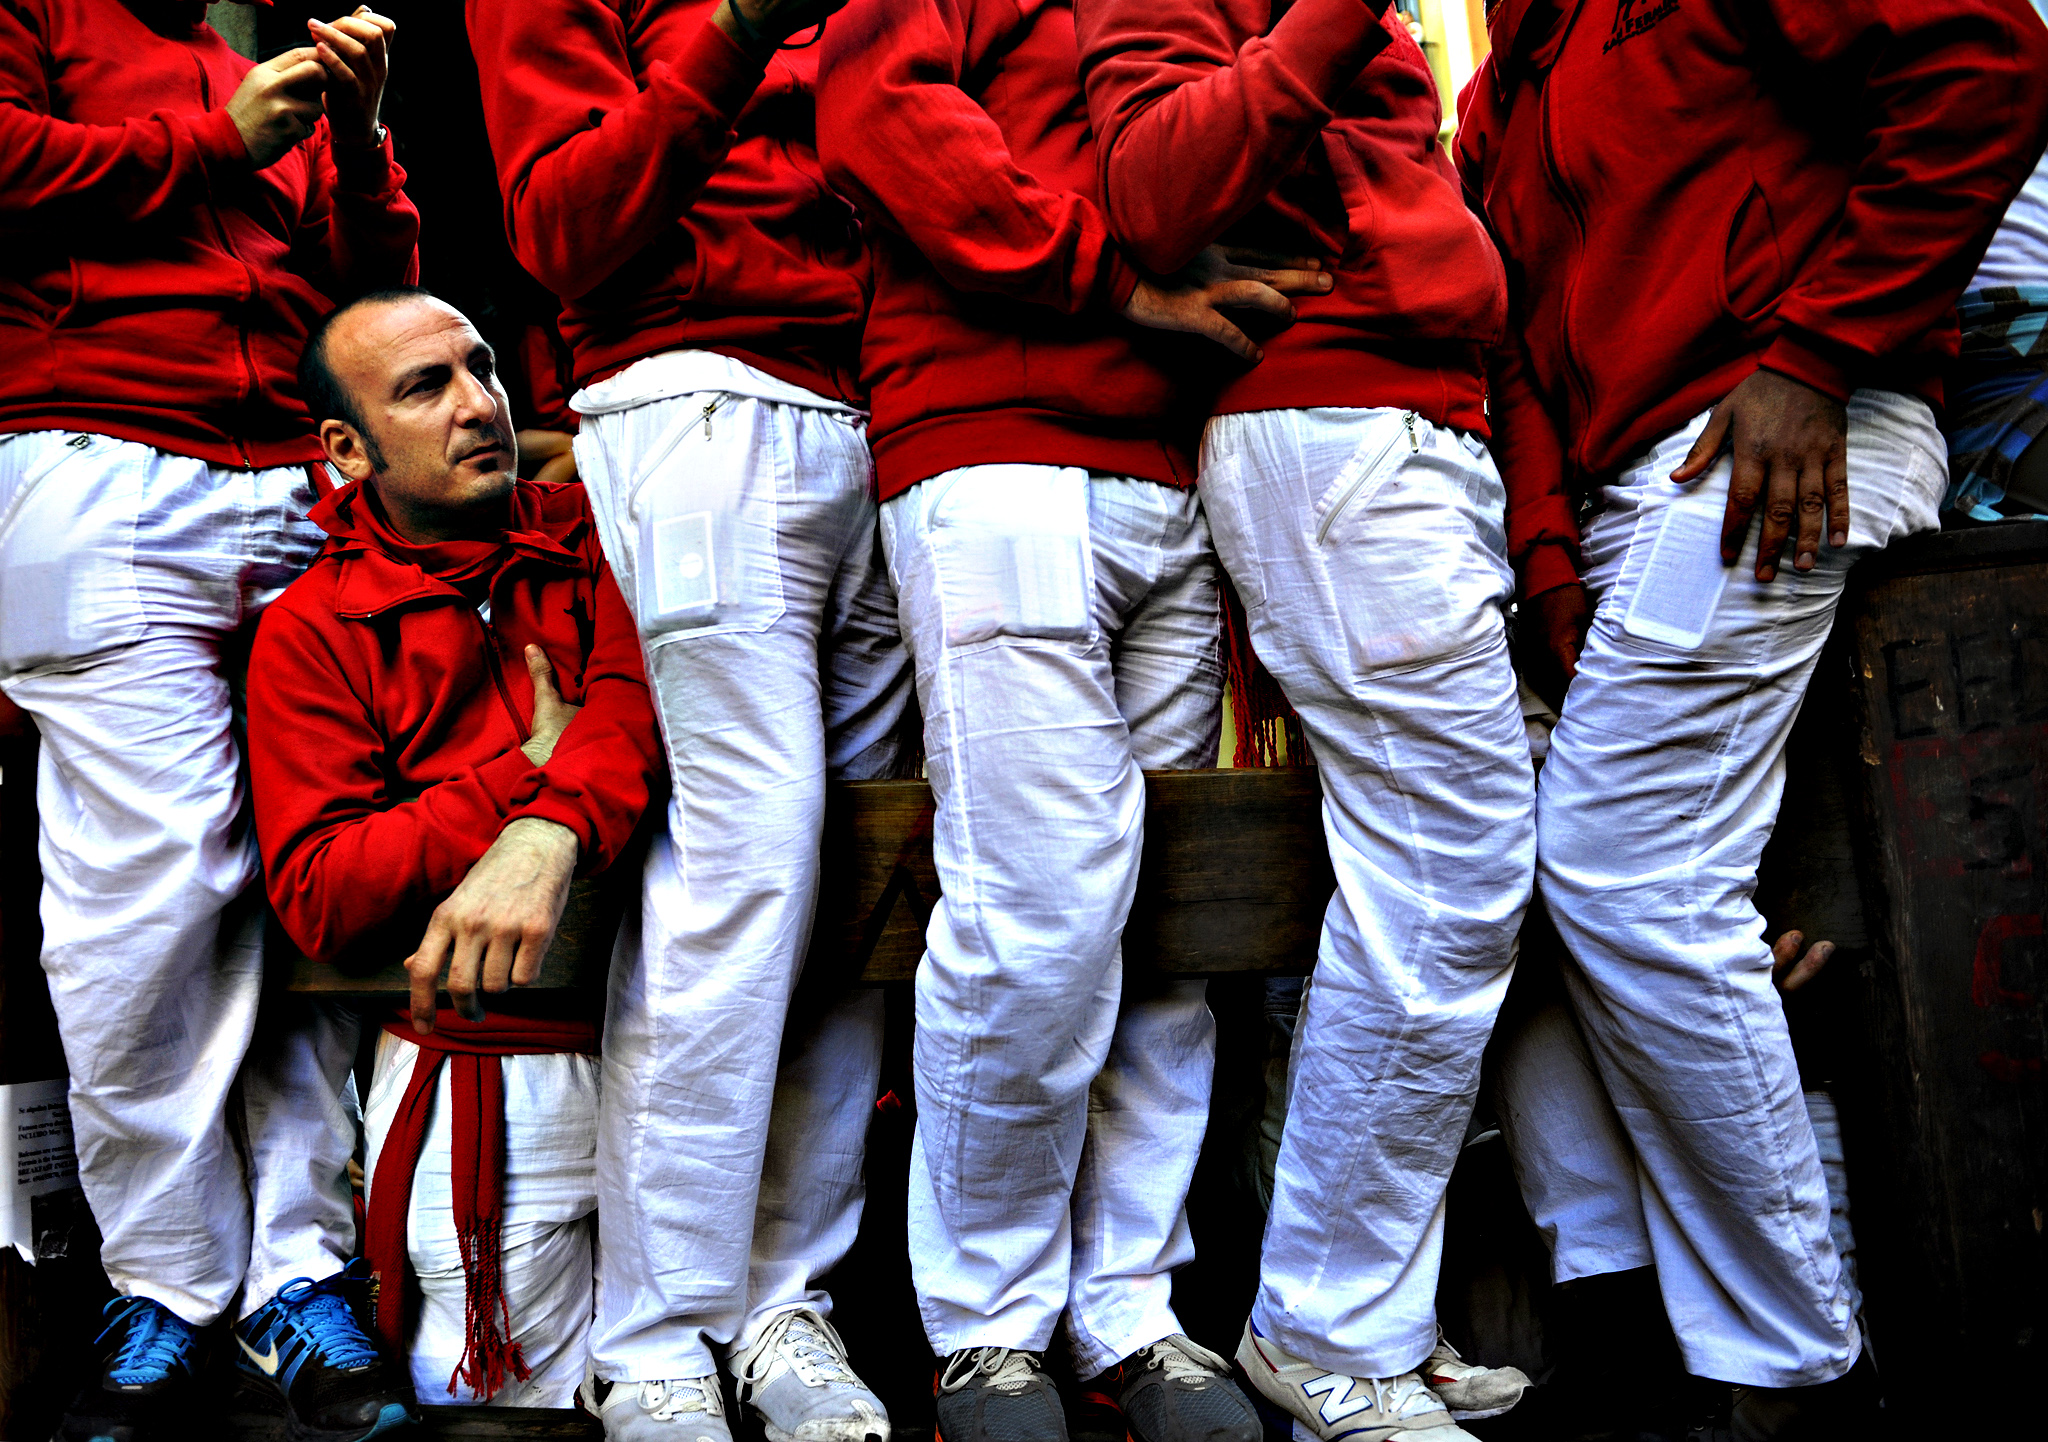 Revellers in traditional dress await the fourth running of the bulls on Estafeta corner at the San Fermin festival in Pamplona, northern Spain, July 10, 2015. One runner was hospitalized following the run that lasted two minutes and twenty-four seconds, according to local media